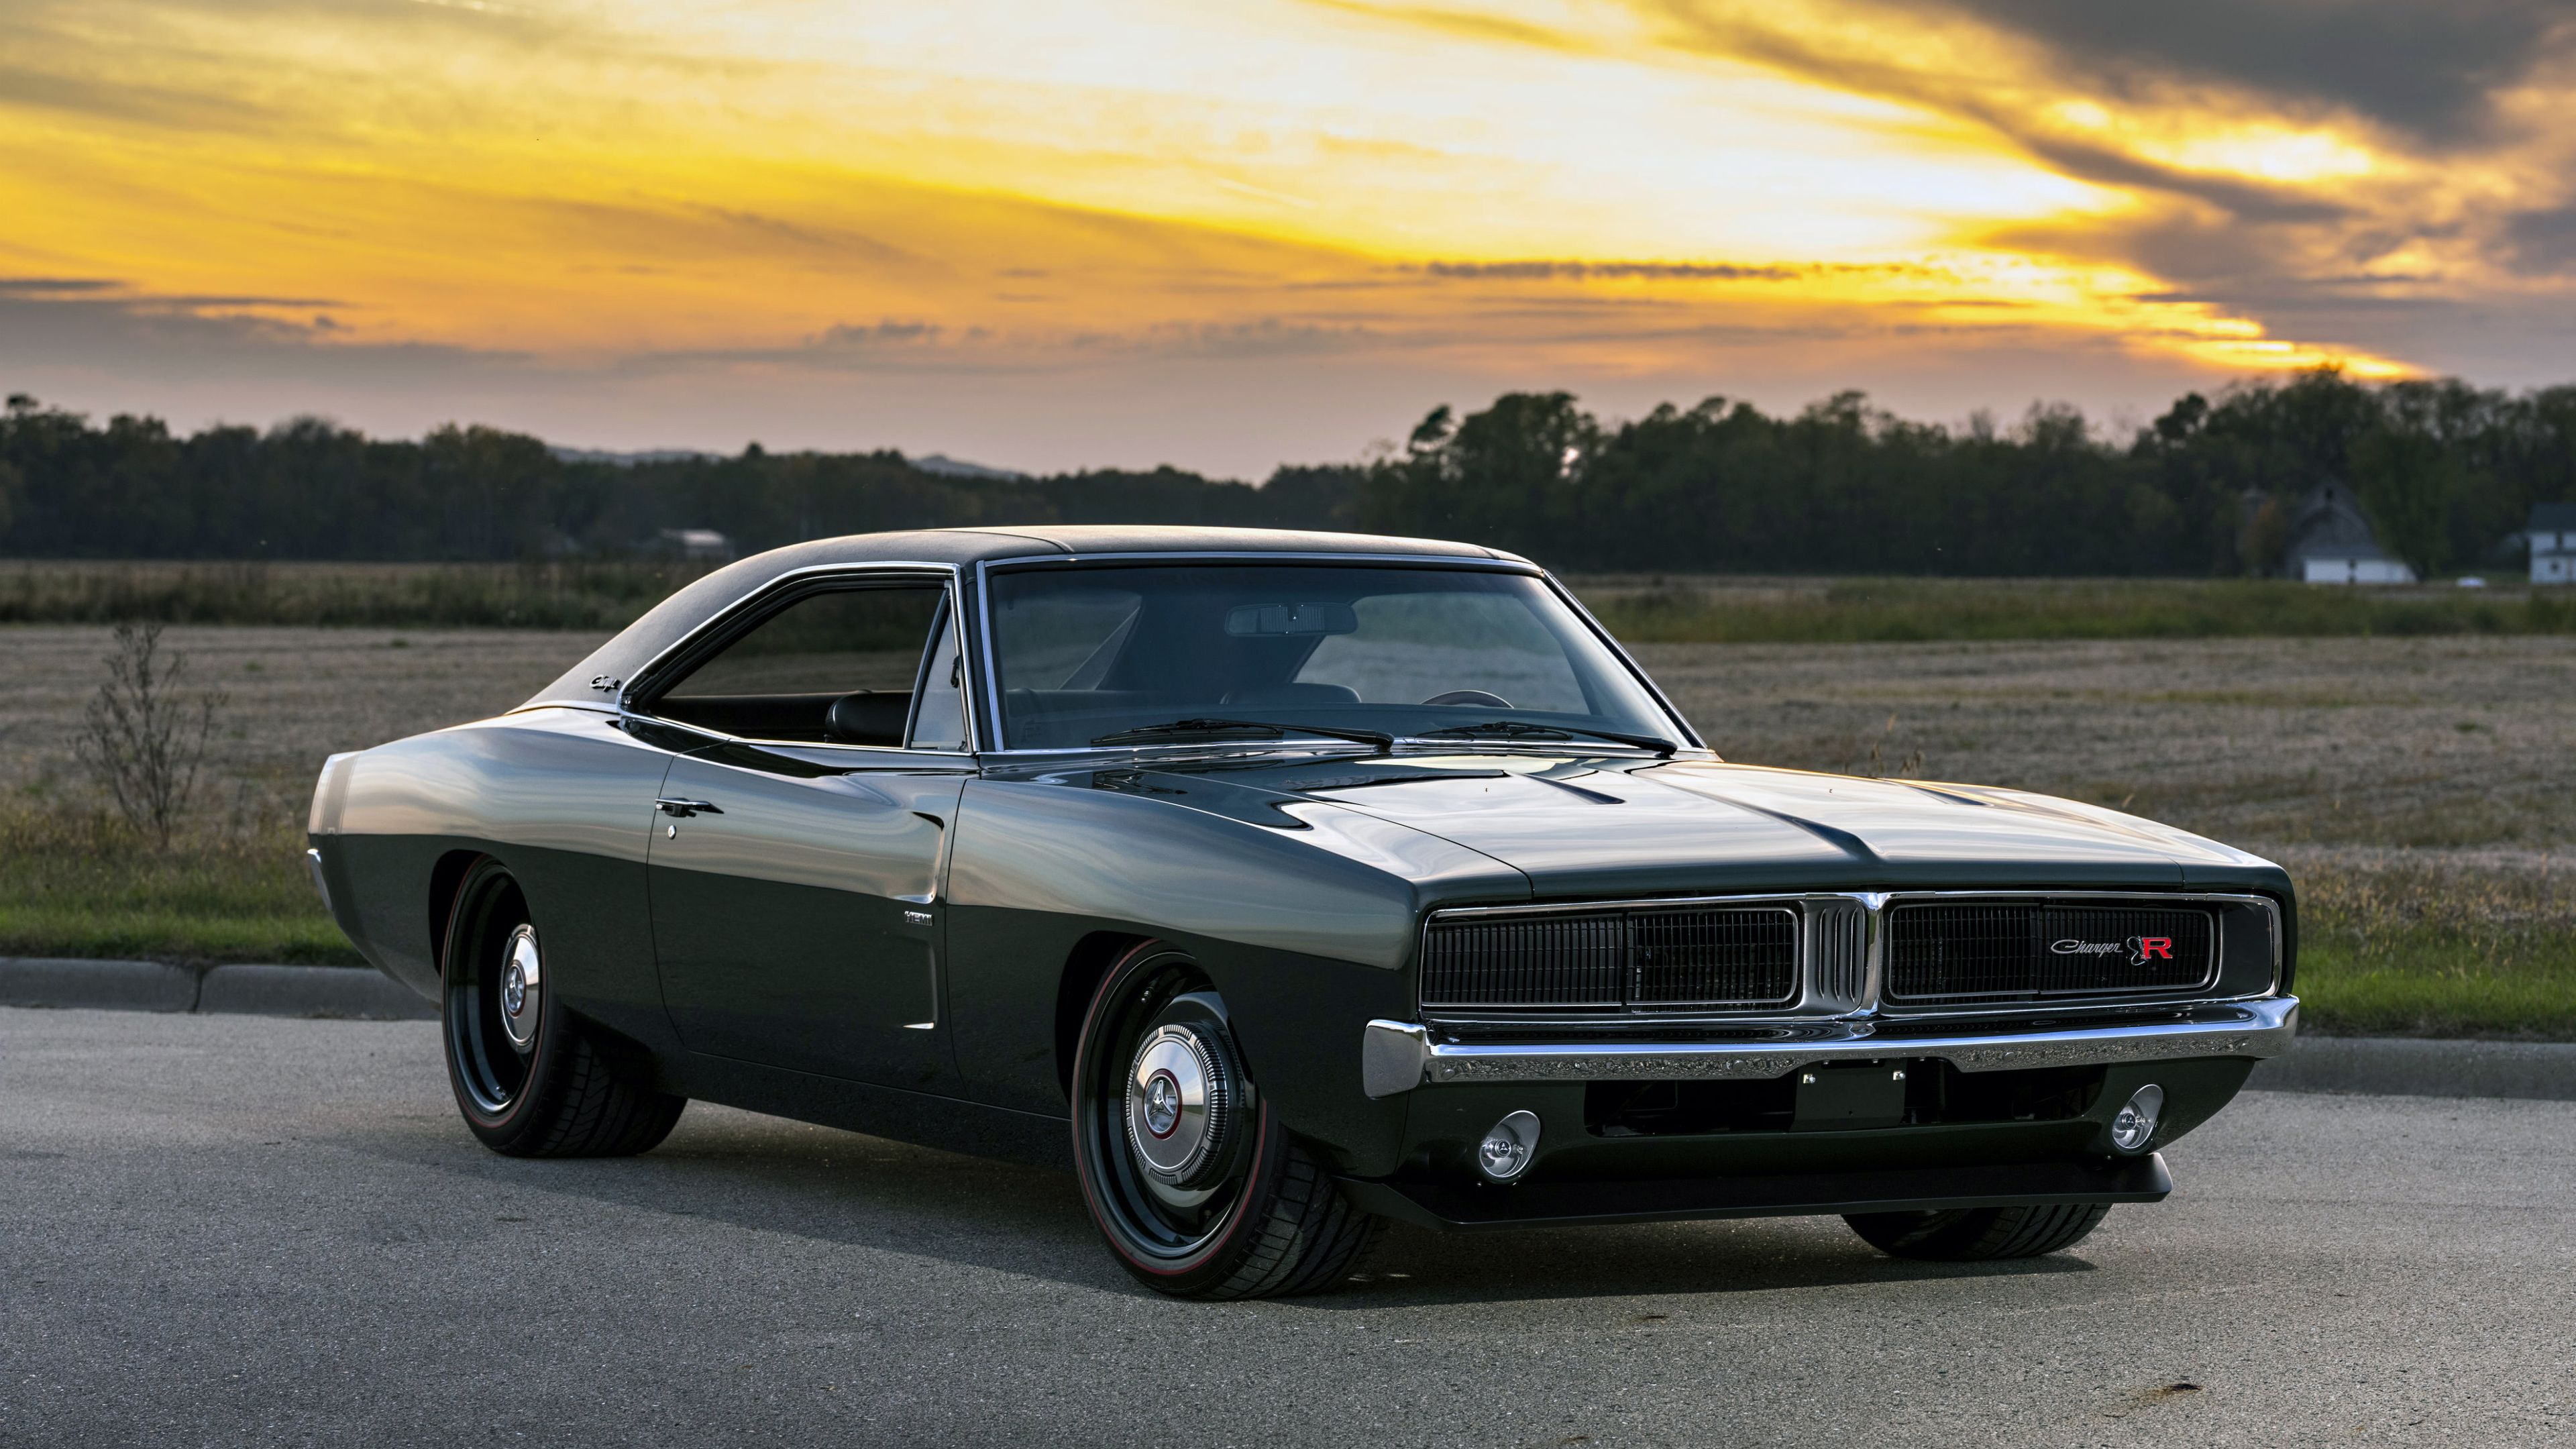 Wallpapers Dodge Charger Posted By Zoey Peltier